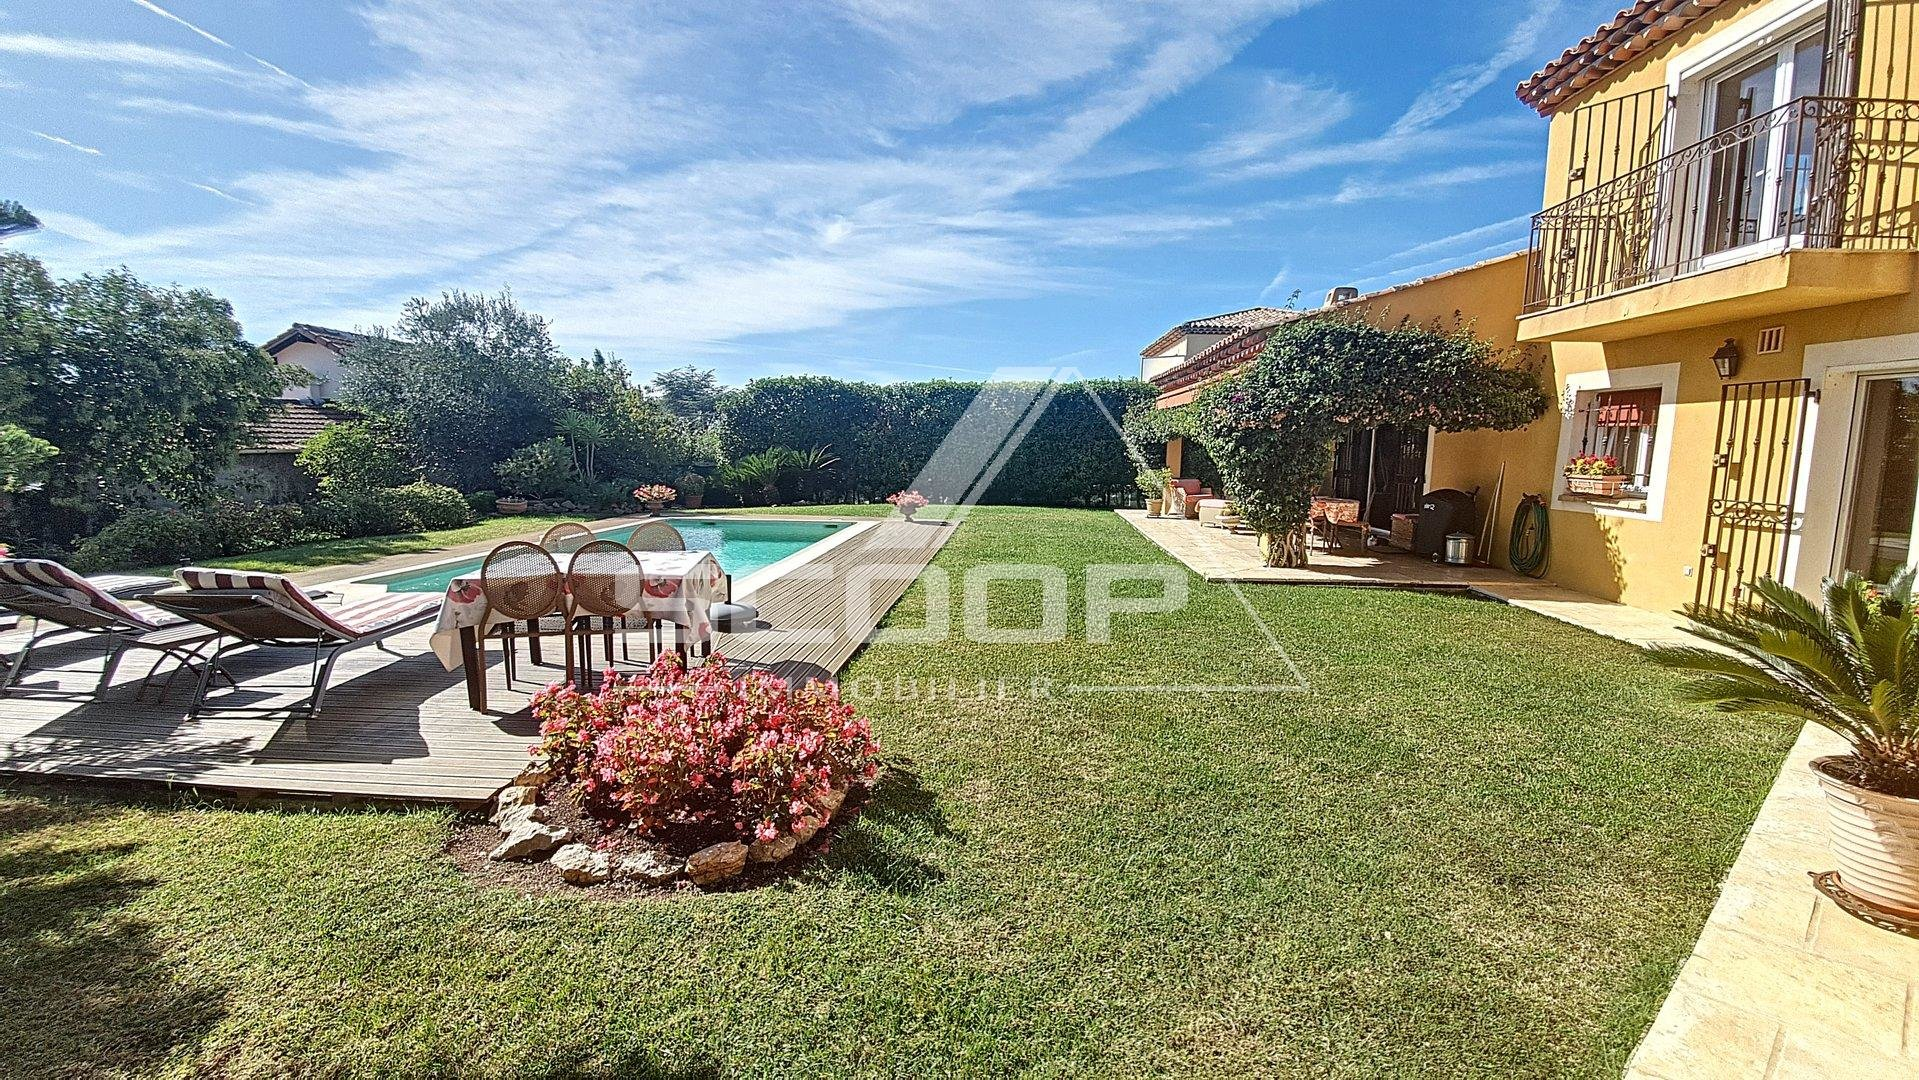 Detached villa / Gulf -Juan Pertuades